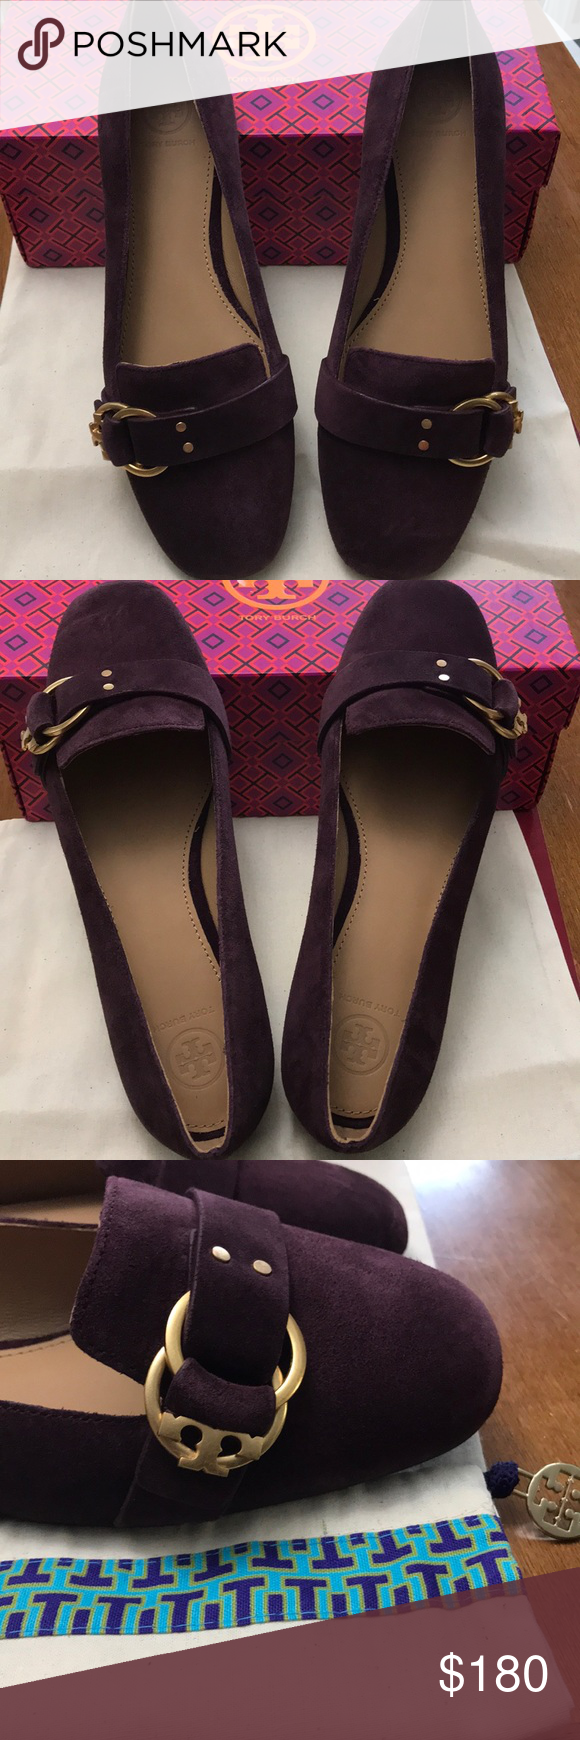 fab0021fc63 Tory Burch Loafer Brand new Tory Burch Marsden Loafer. Comes with bag and  box. Purchased but prefers another color. Tory Burch Shoes Flats   Loafers